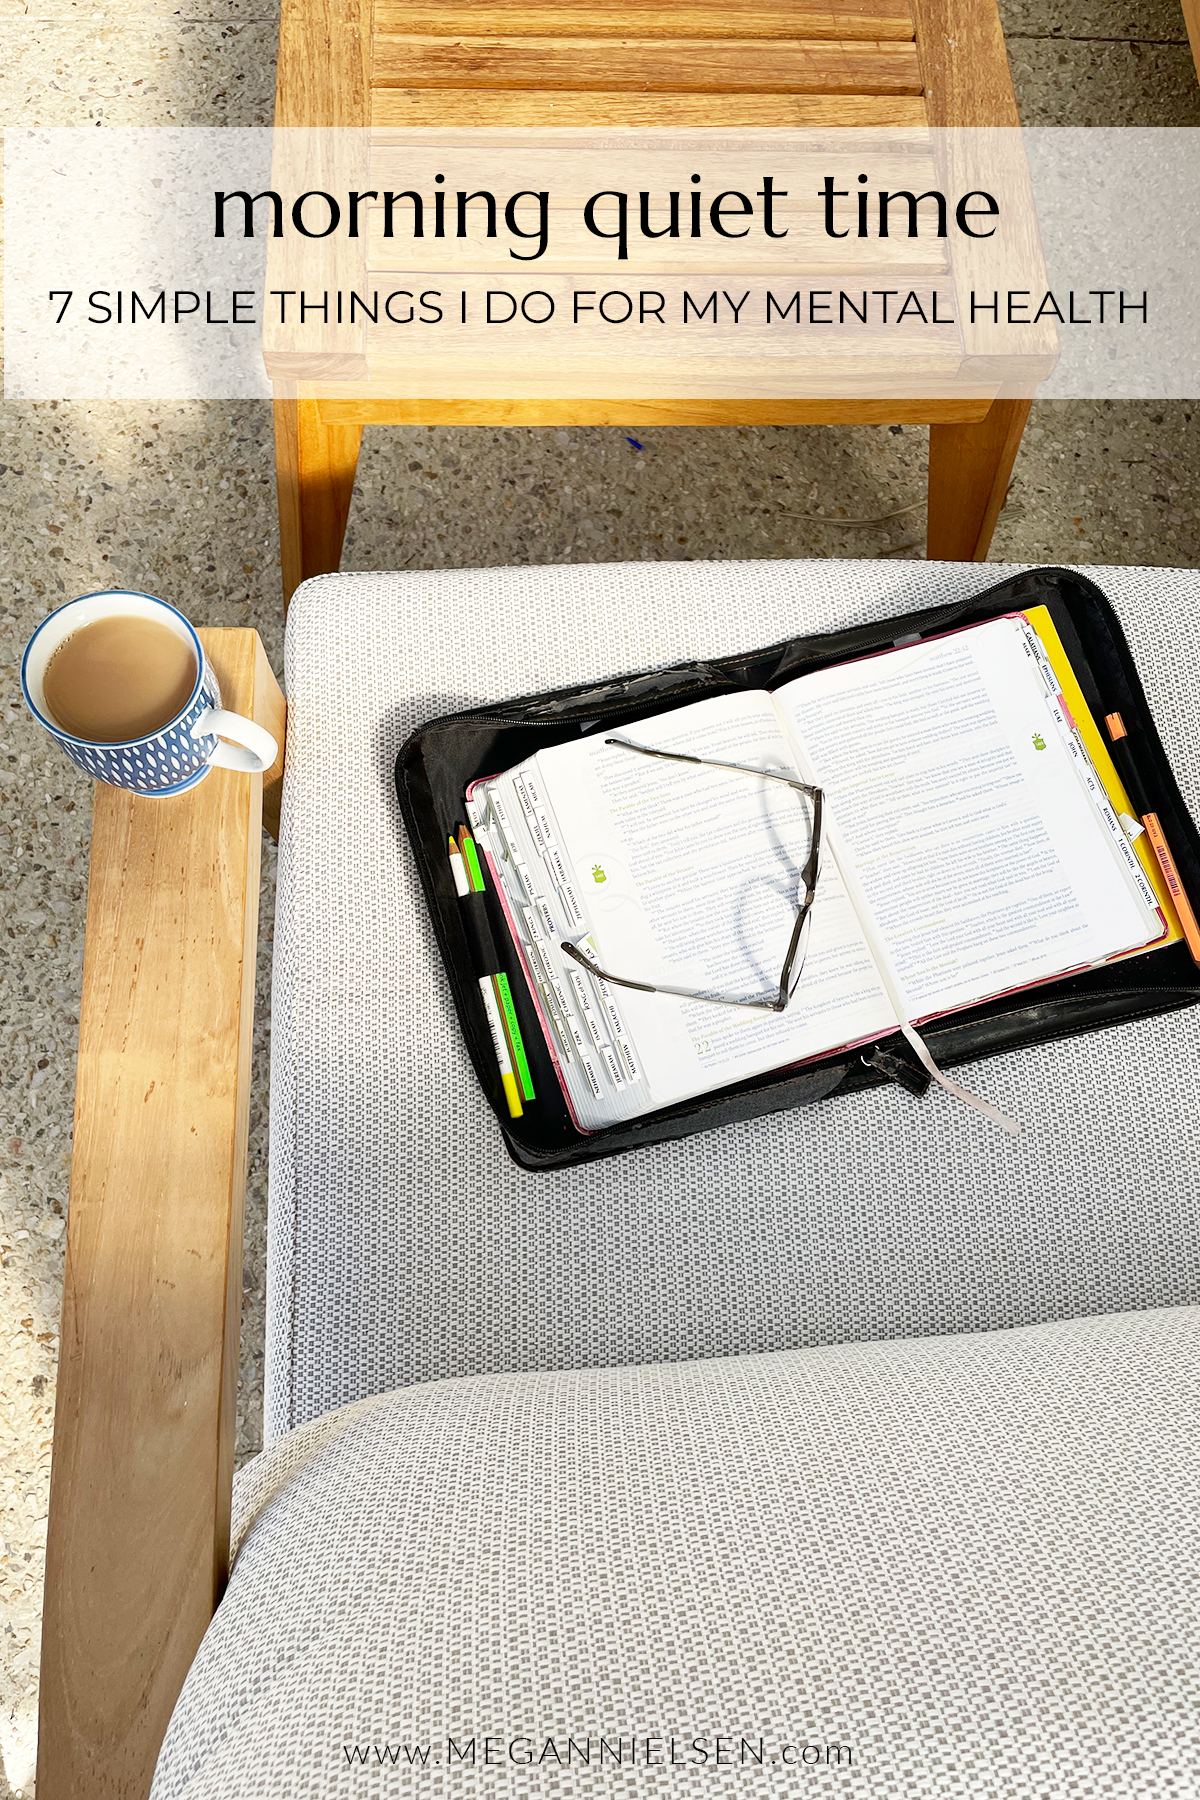 7 Simple Things I Do For My Mental Health | Morning Quiet Time